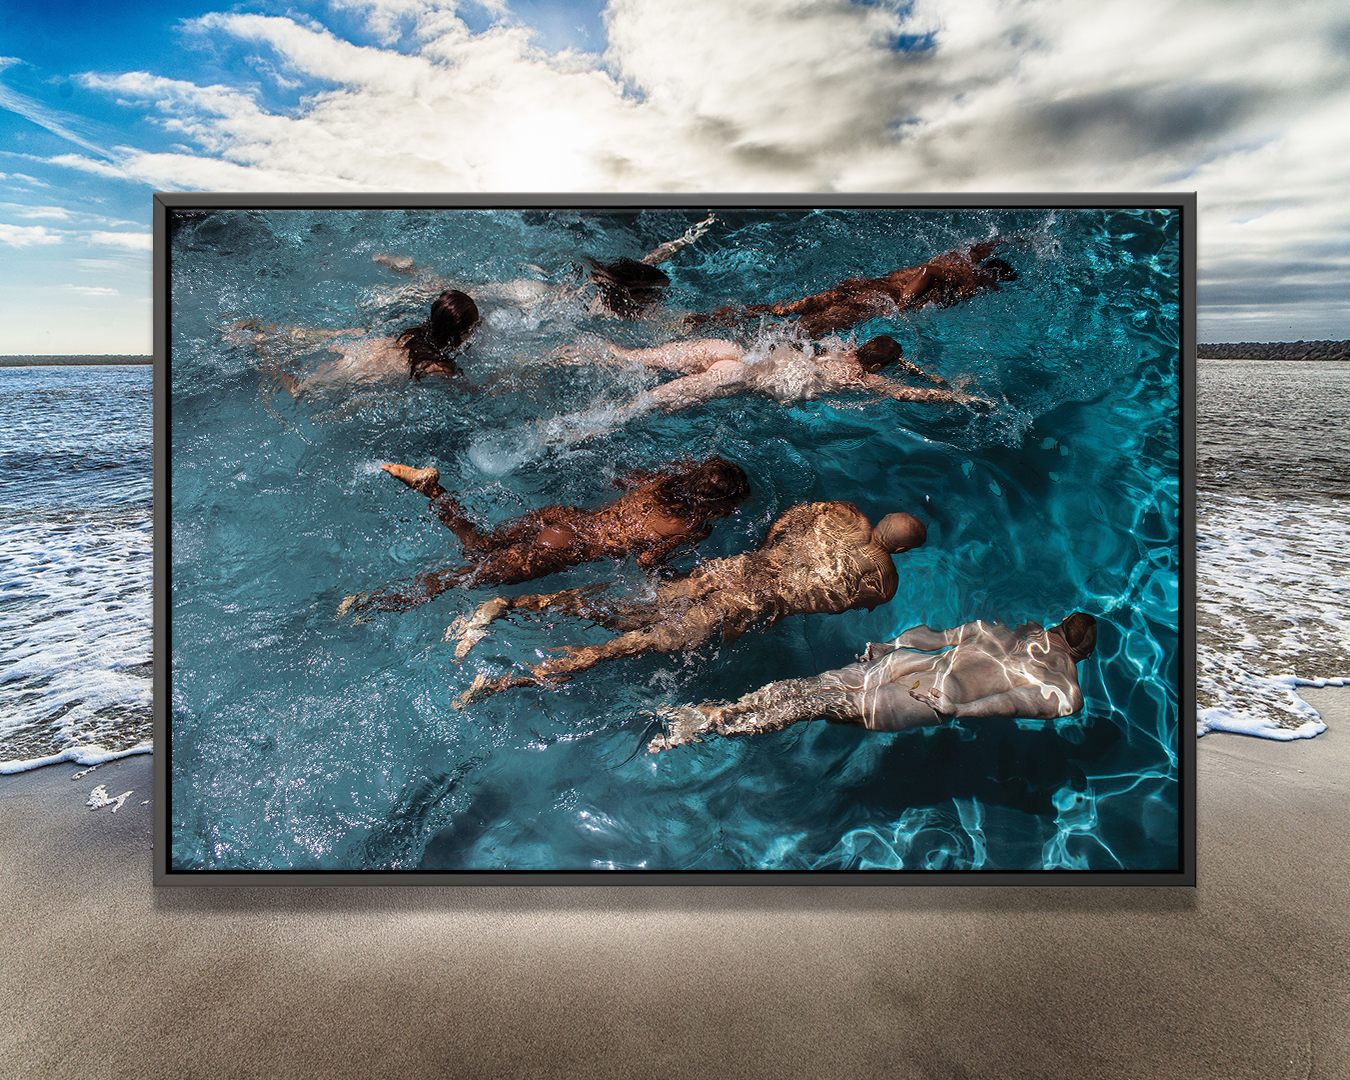 """""""Swim Meet"""" by Gregory Prescott shows a photo of seven people of various genders and races swimming in blue water"""